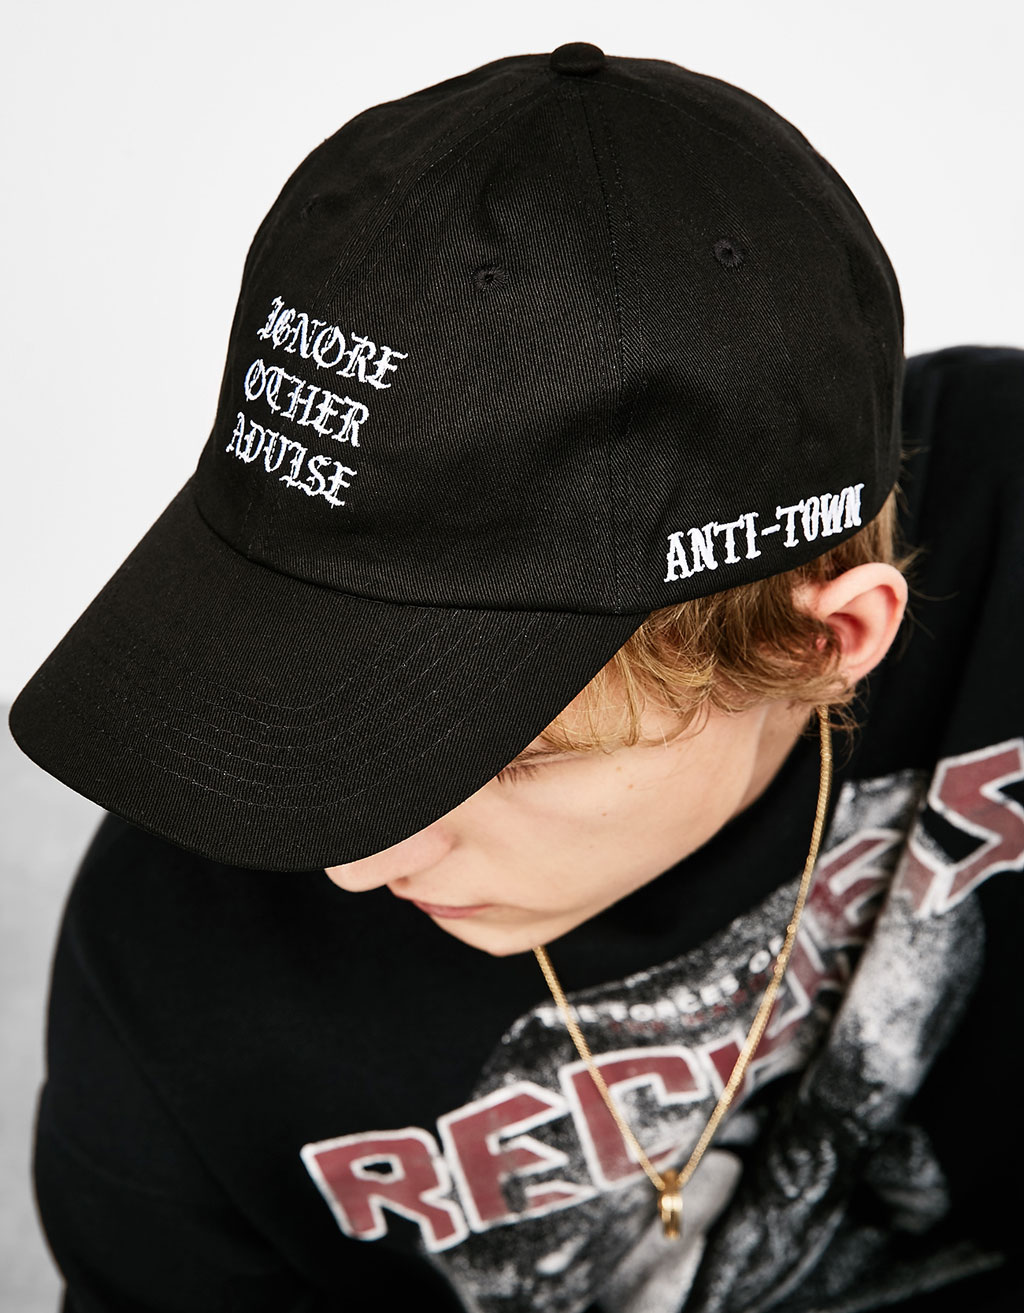 Hat embroidered with Gothic letters